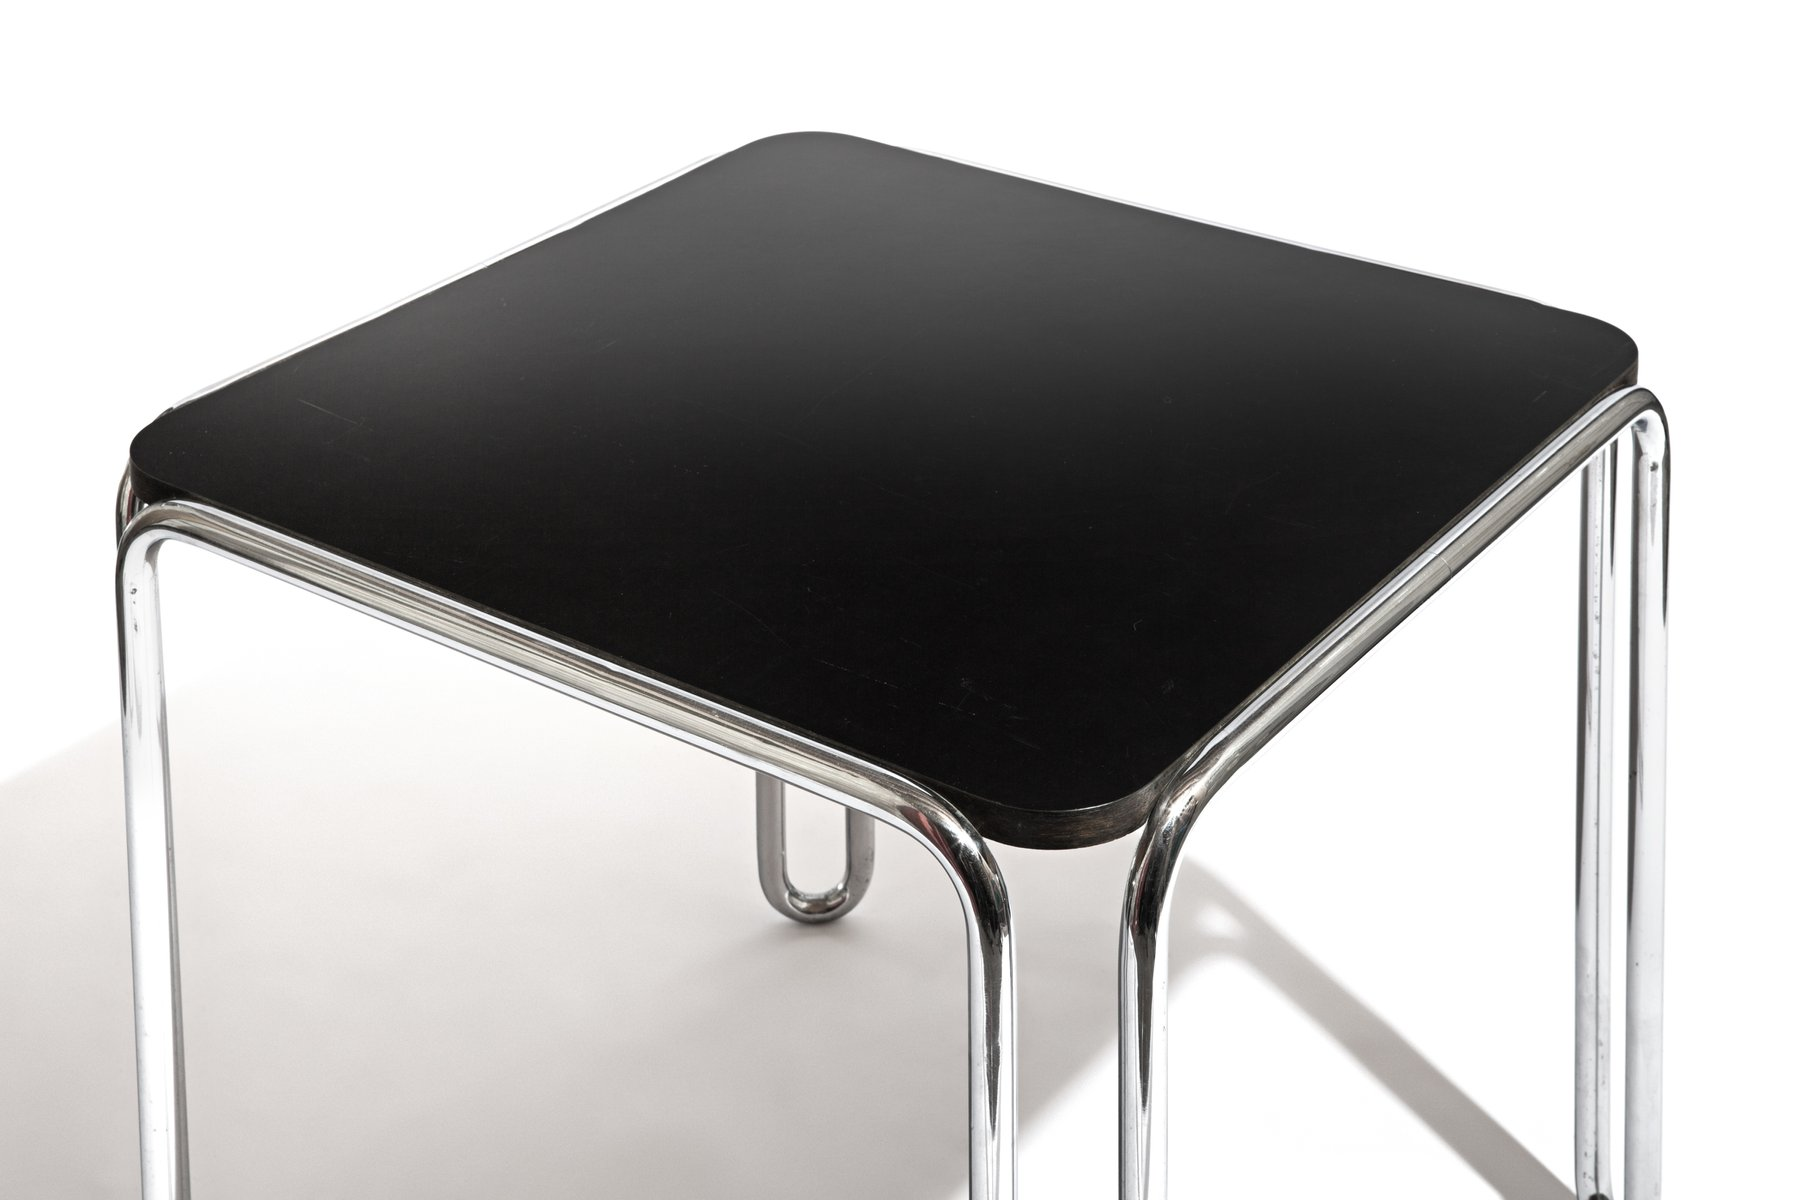 B10 table by marcel breuer 1940s for sale at pamono b10 table by marcel breuer 1940s geotapseo Choice Image